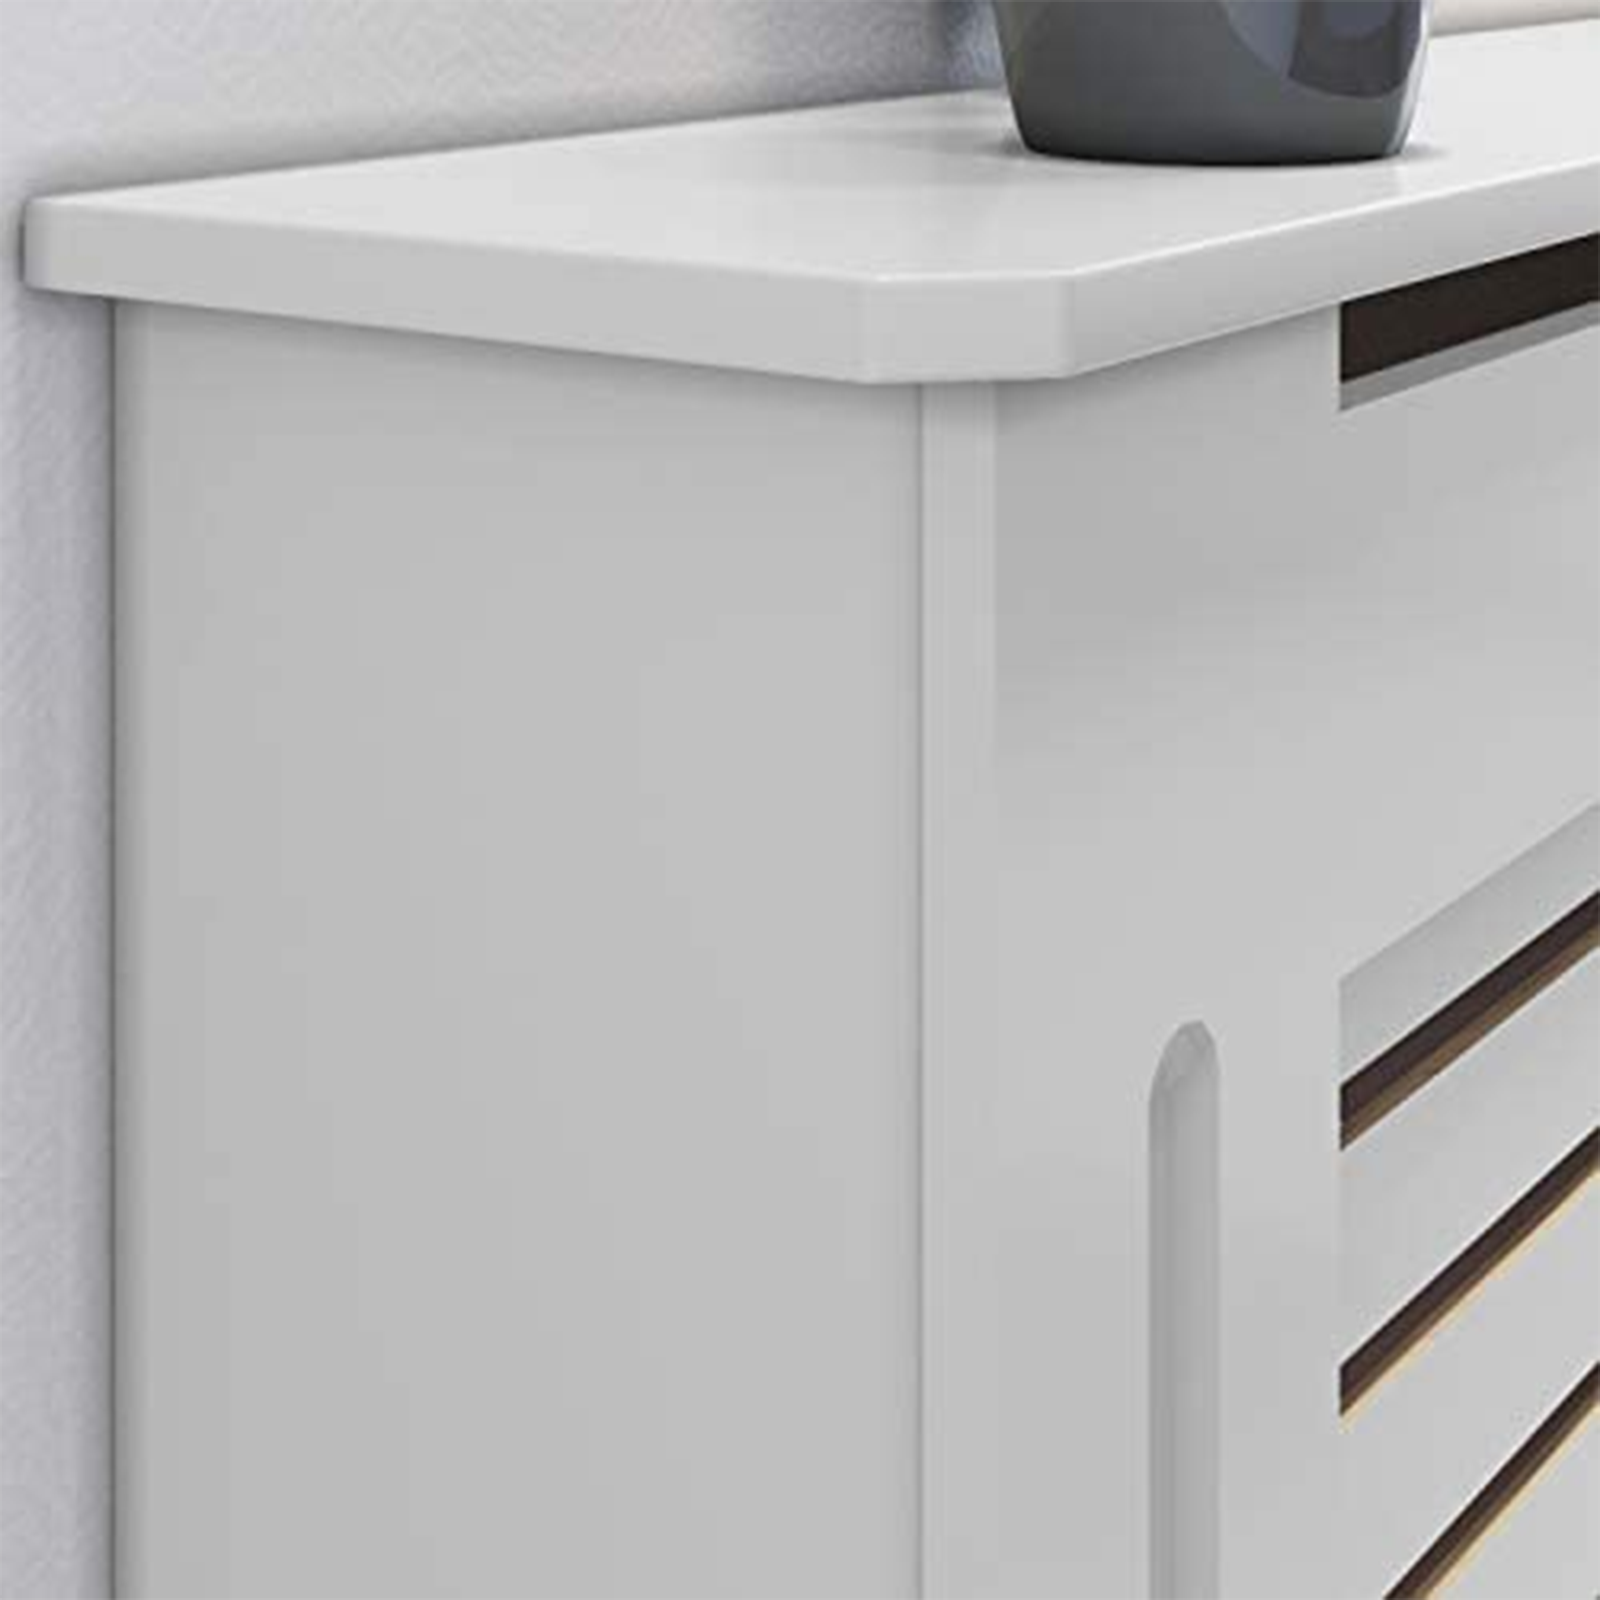 White-Radiator-Cover-Cabinet-Small-Large-Modern-MDF-Slat-Wood-Grill-Furniture miniatuur 27